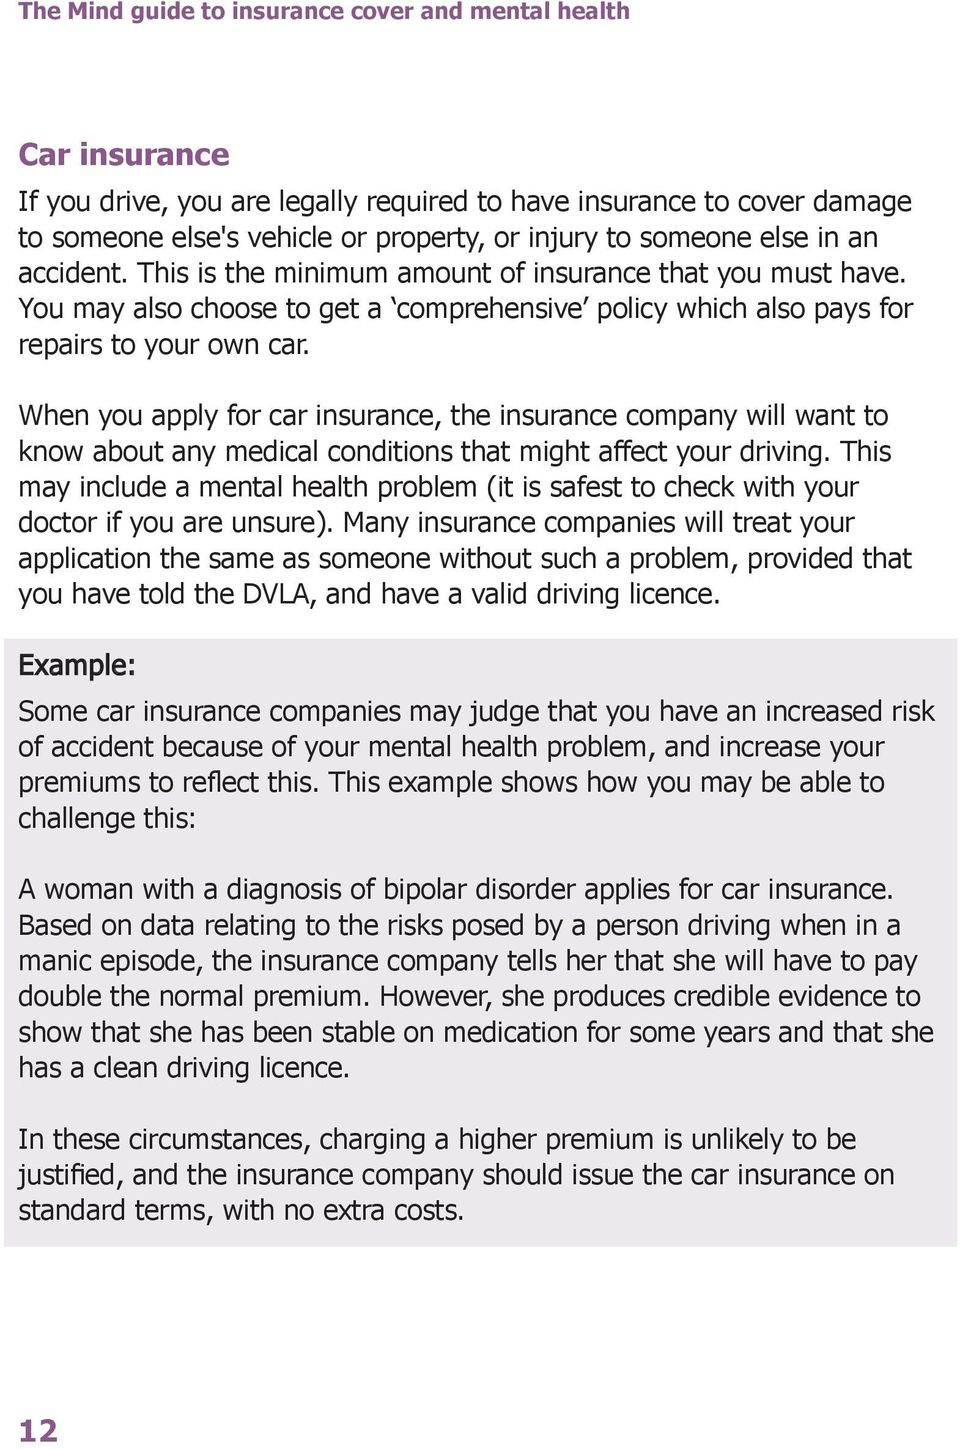 When you apply for car insurance, the insurance company will want to know about any medical conditions that might affect your driving.